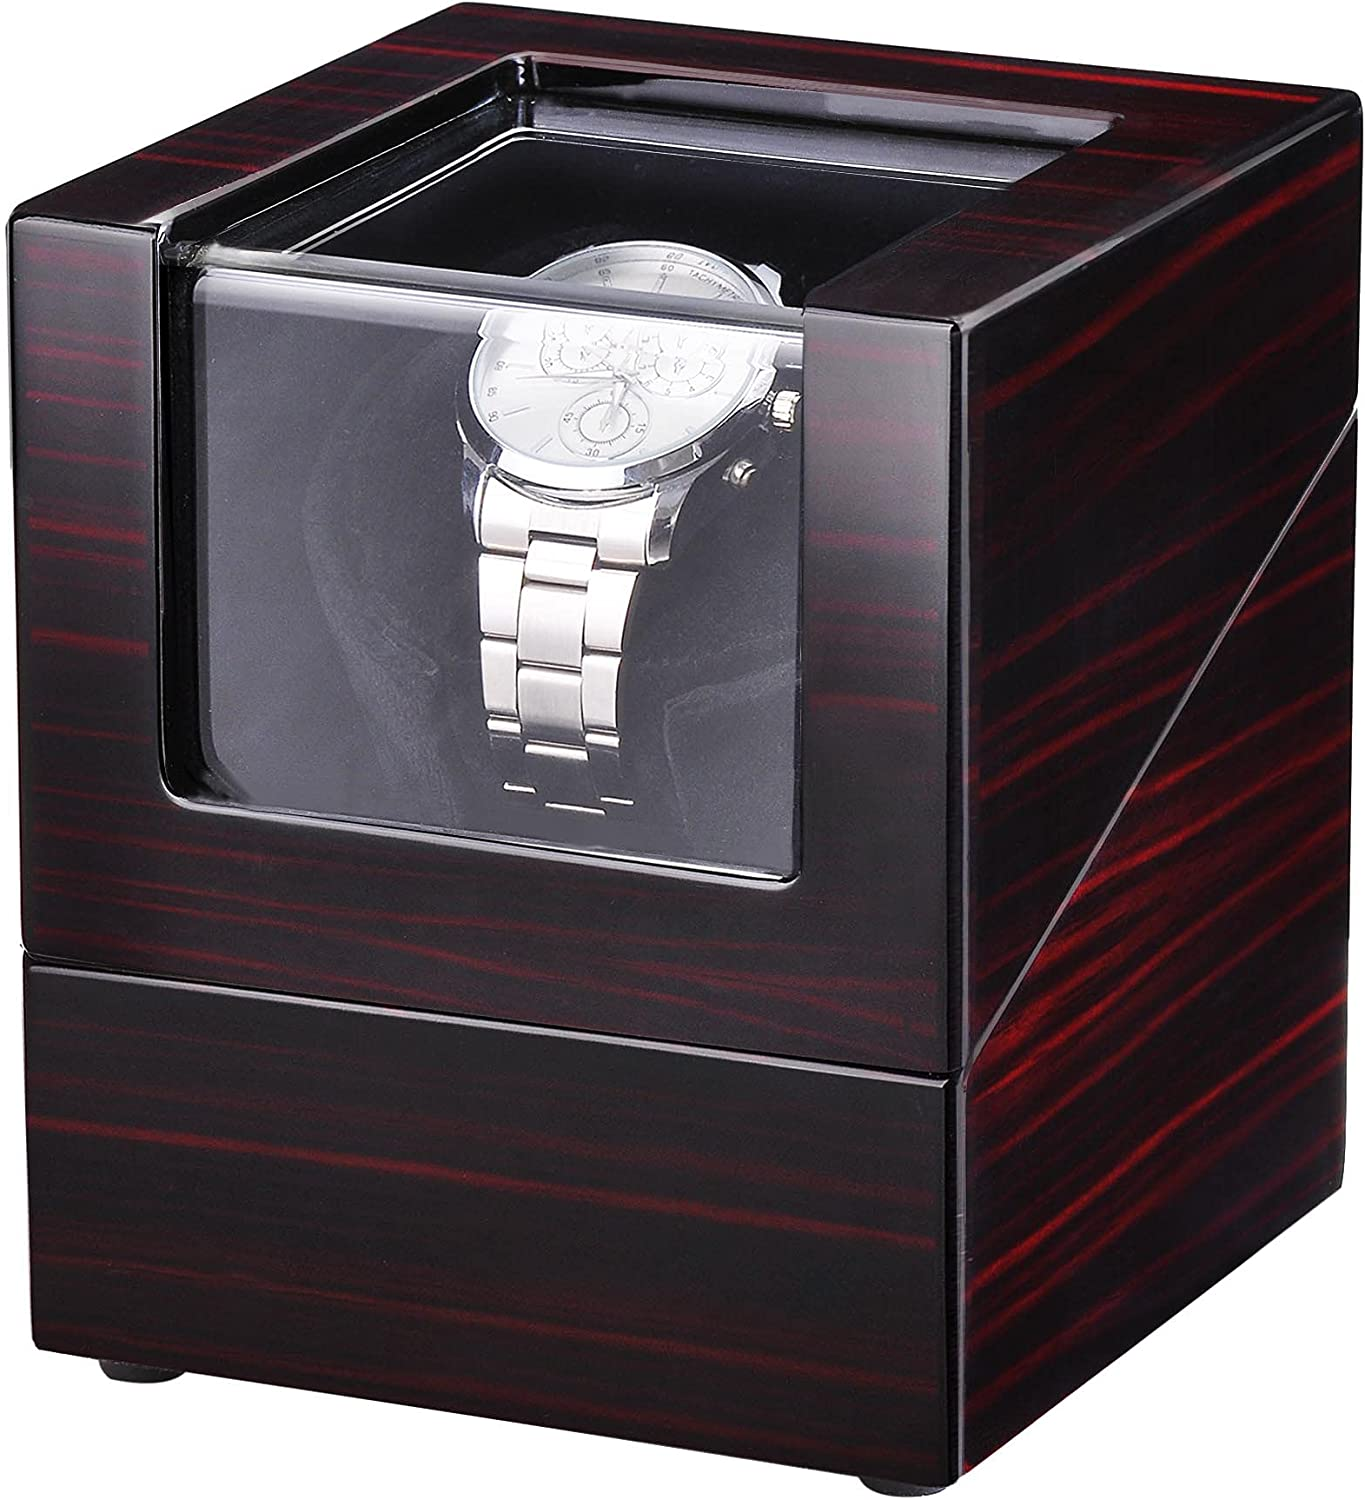 Yescom National products Automatic Single Watch Max 50% OFF Winder Box Wooden Ro Display